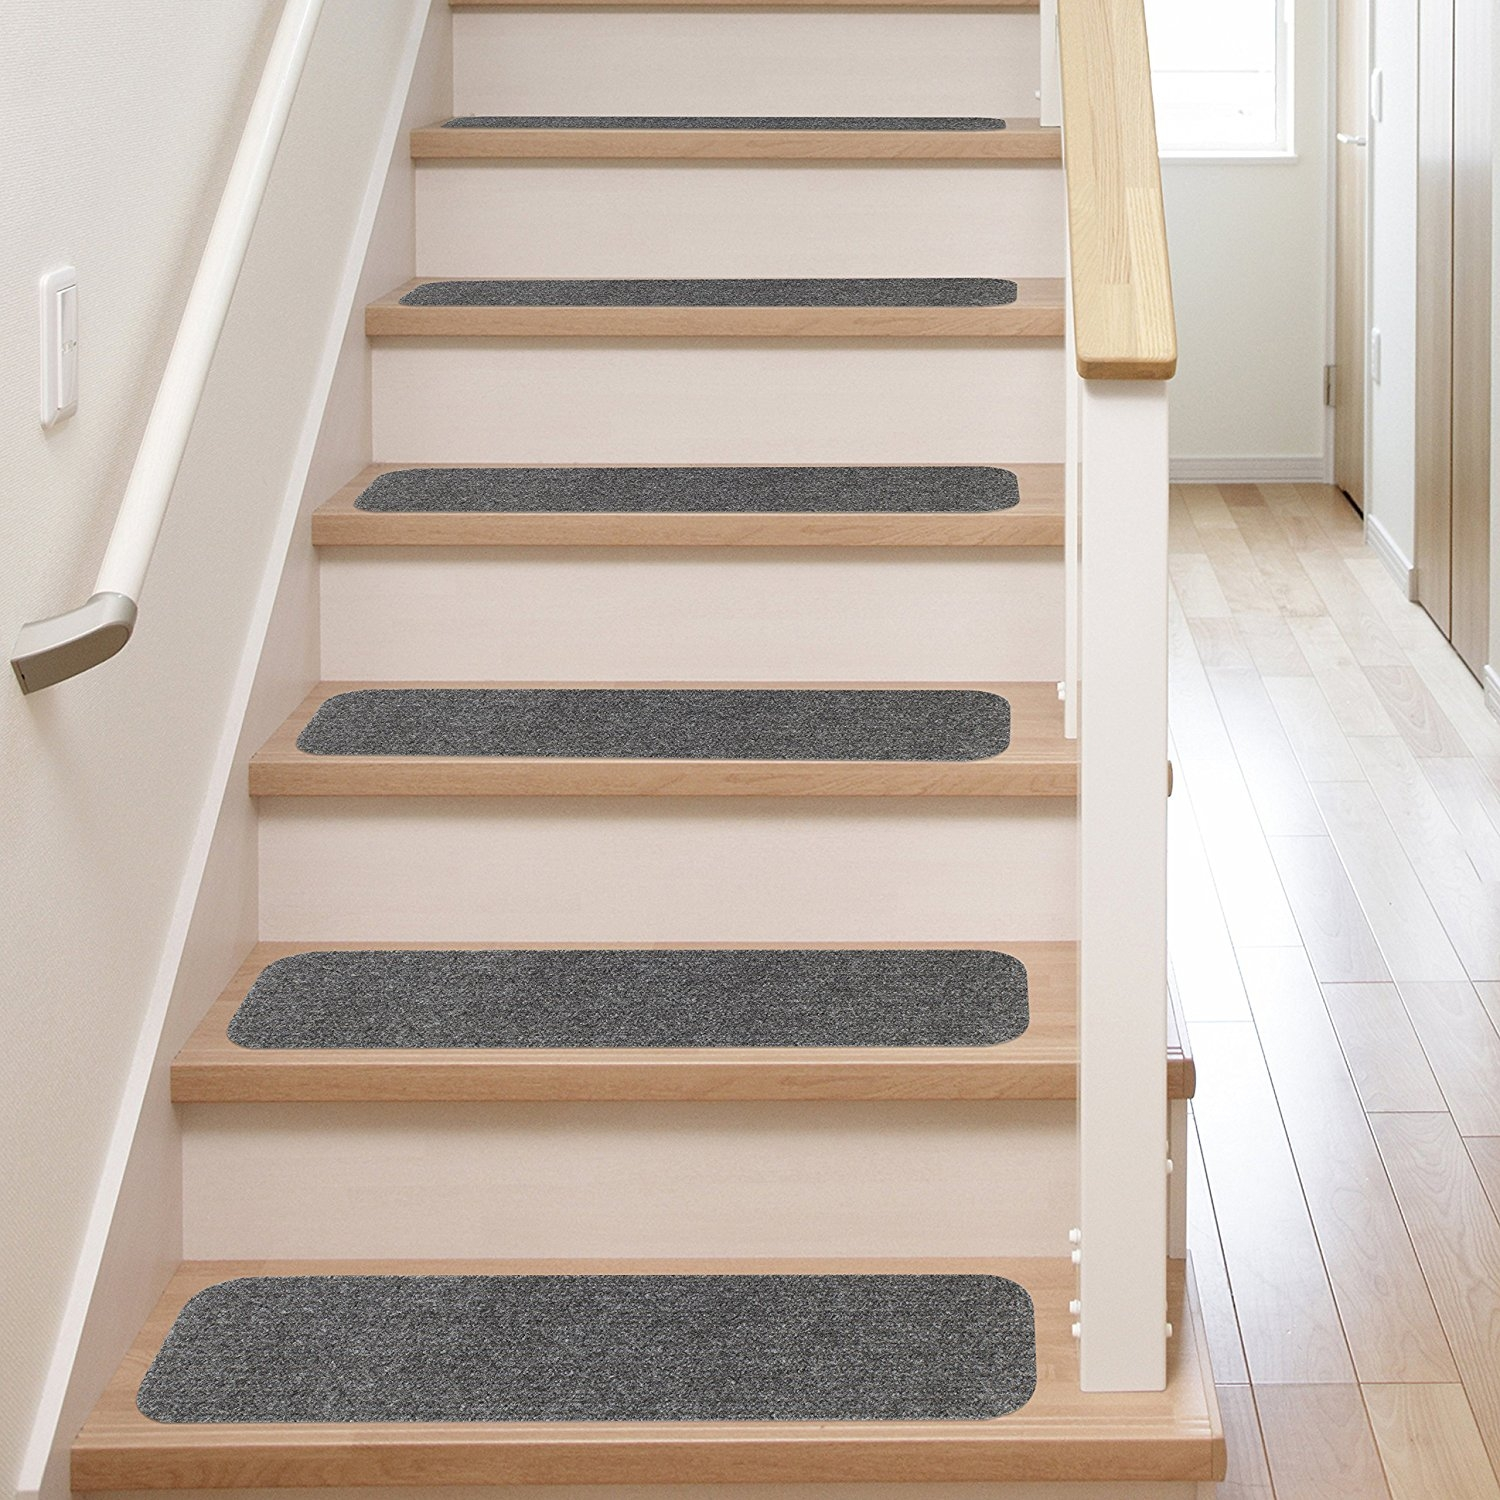 Featured Image of Traction Pads For Stairs